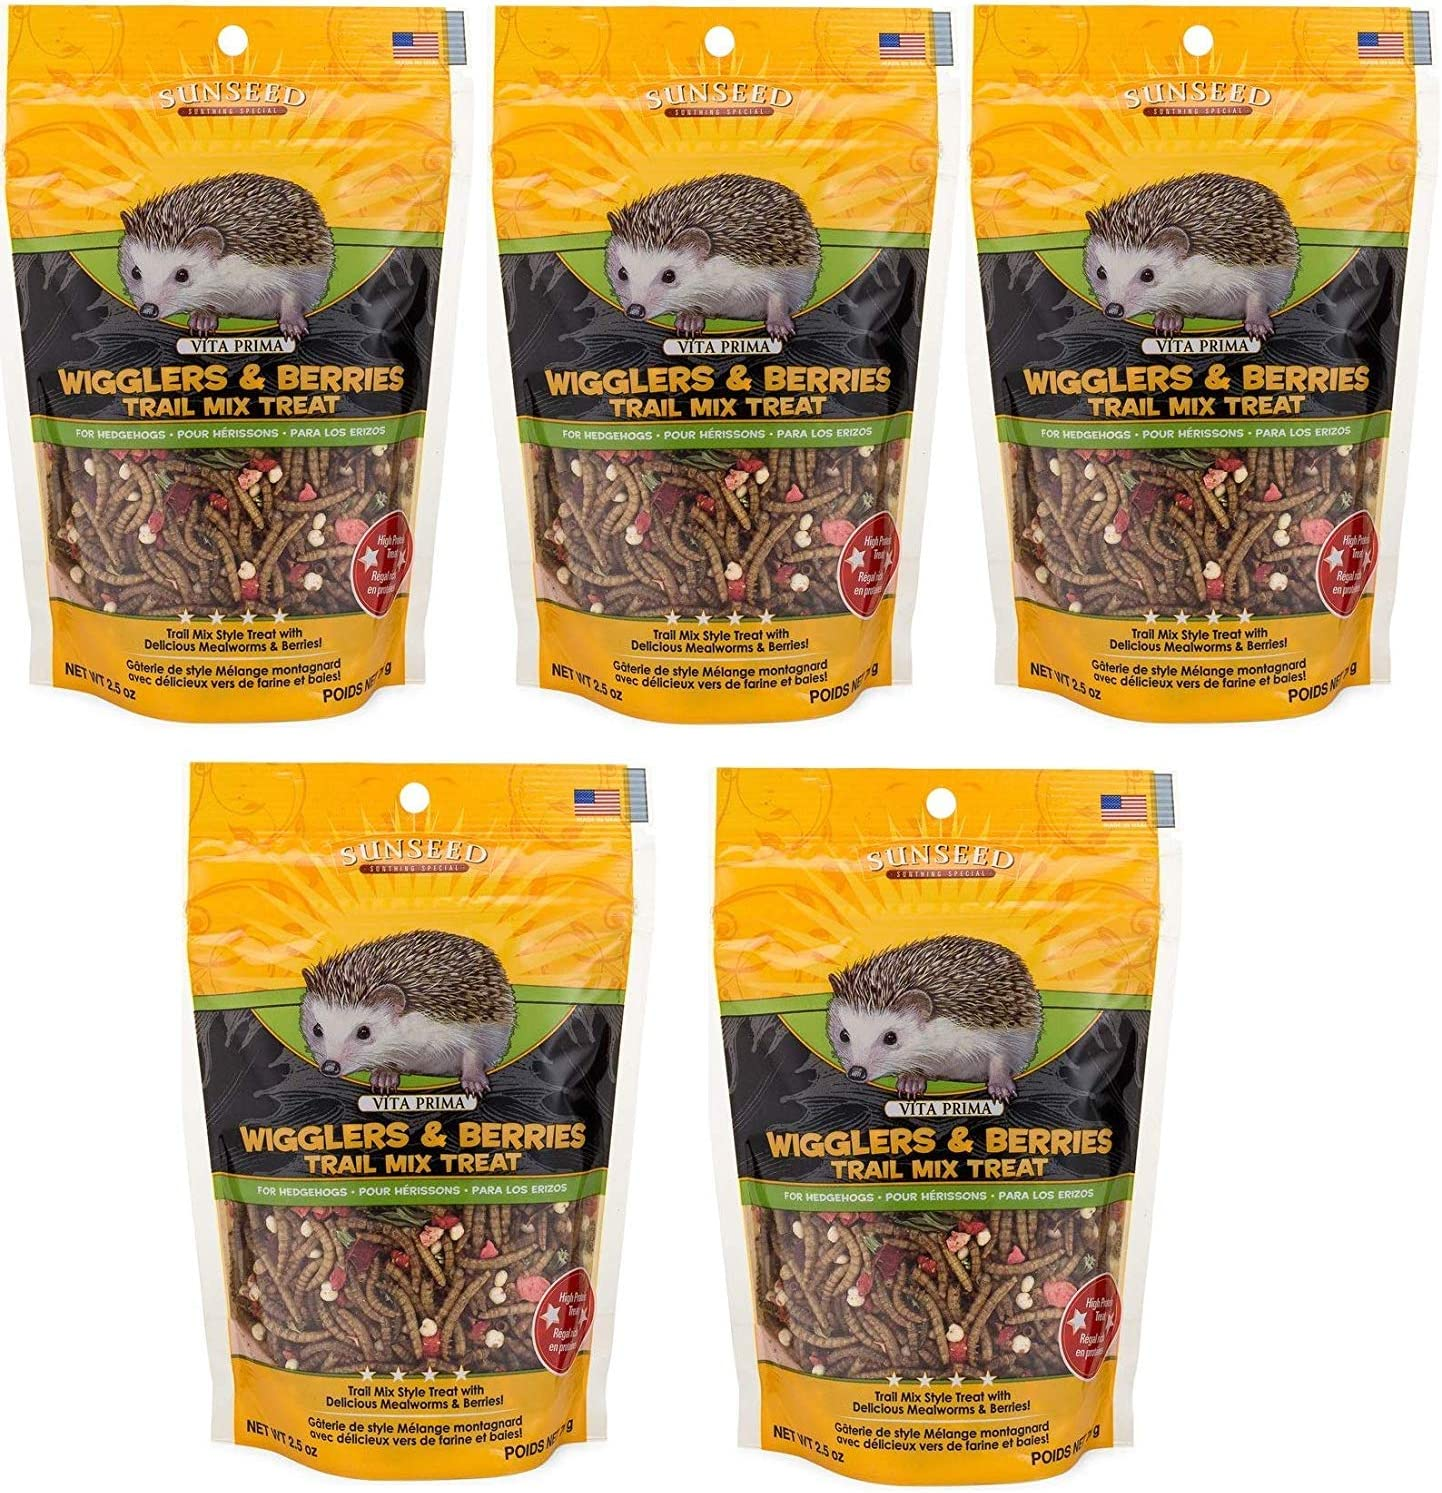 Sunseed Company 5 Pack of Wigglers and Berries, 2.5 Ounces Each, Trail Mix Treat for Hedgehogs